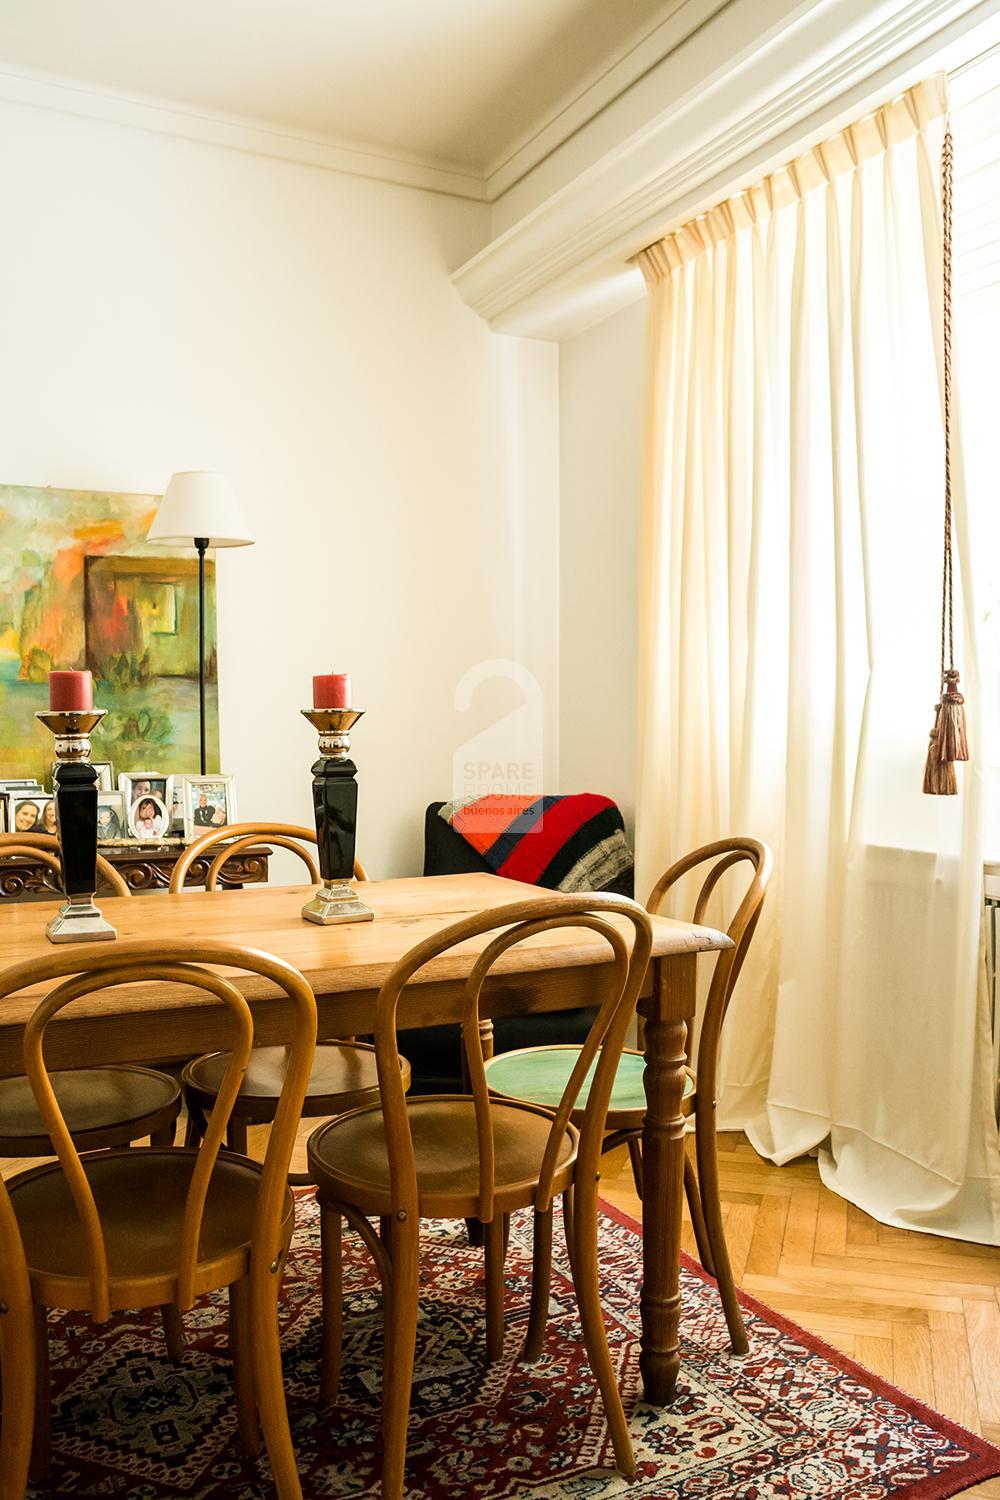 The dining-room at the apartment in Belgrano